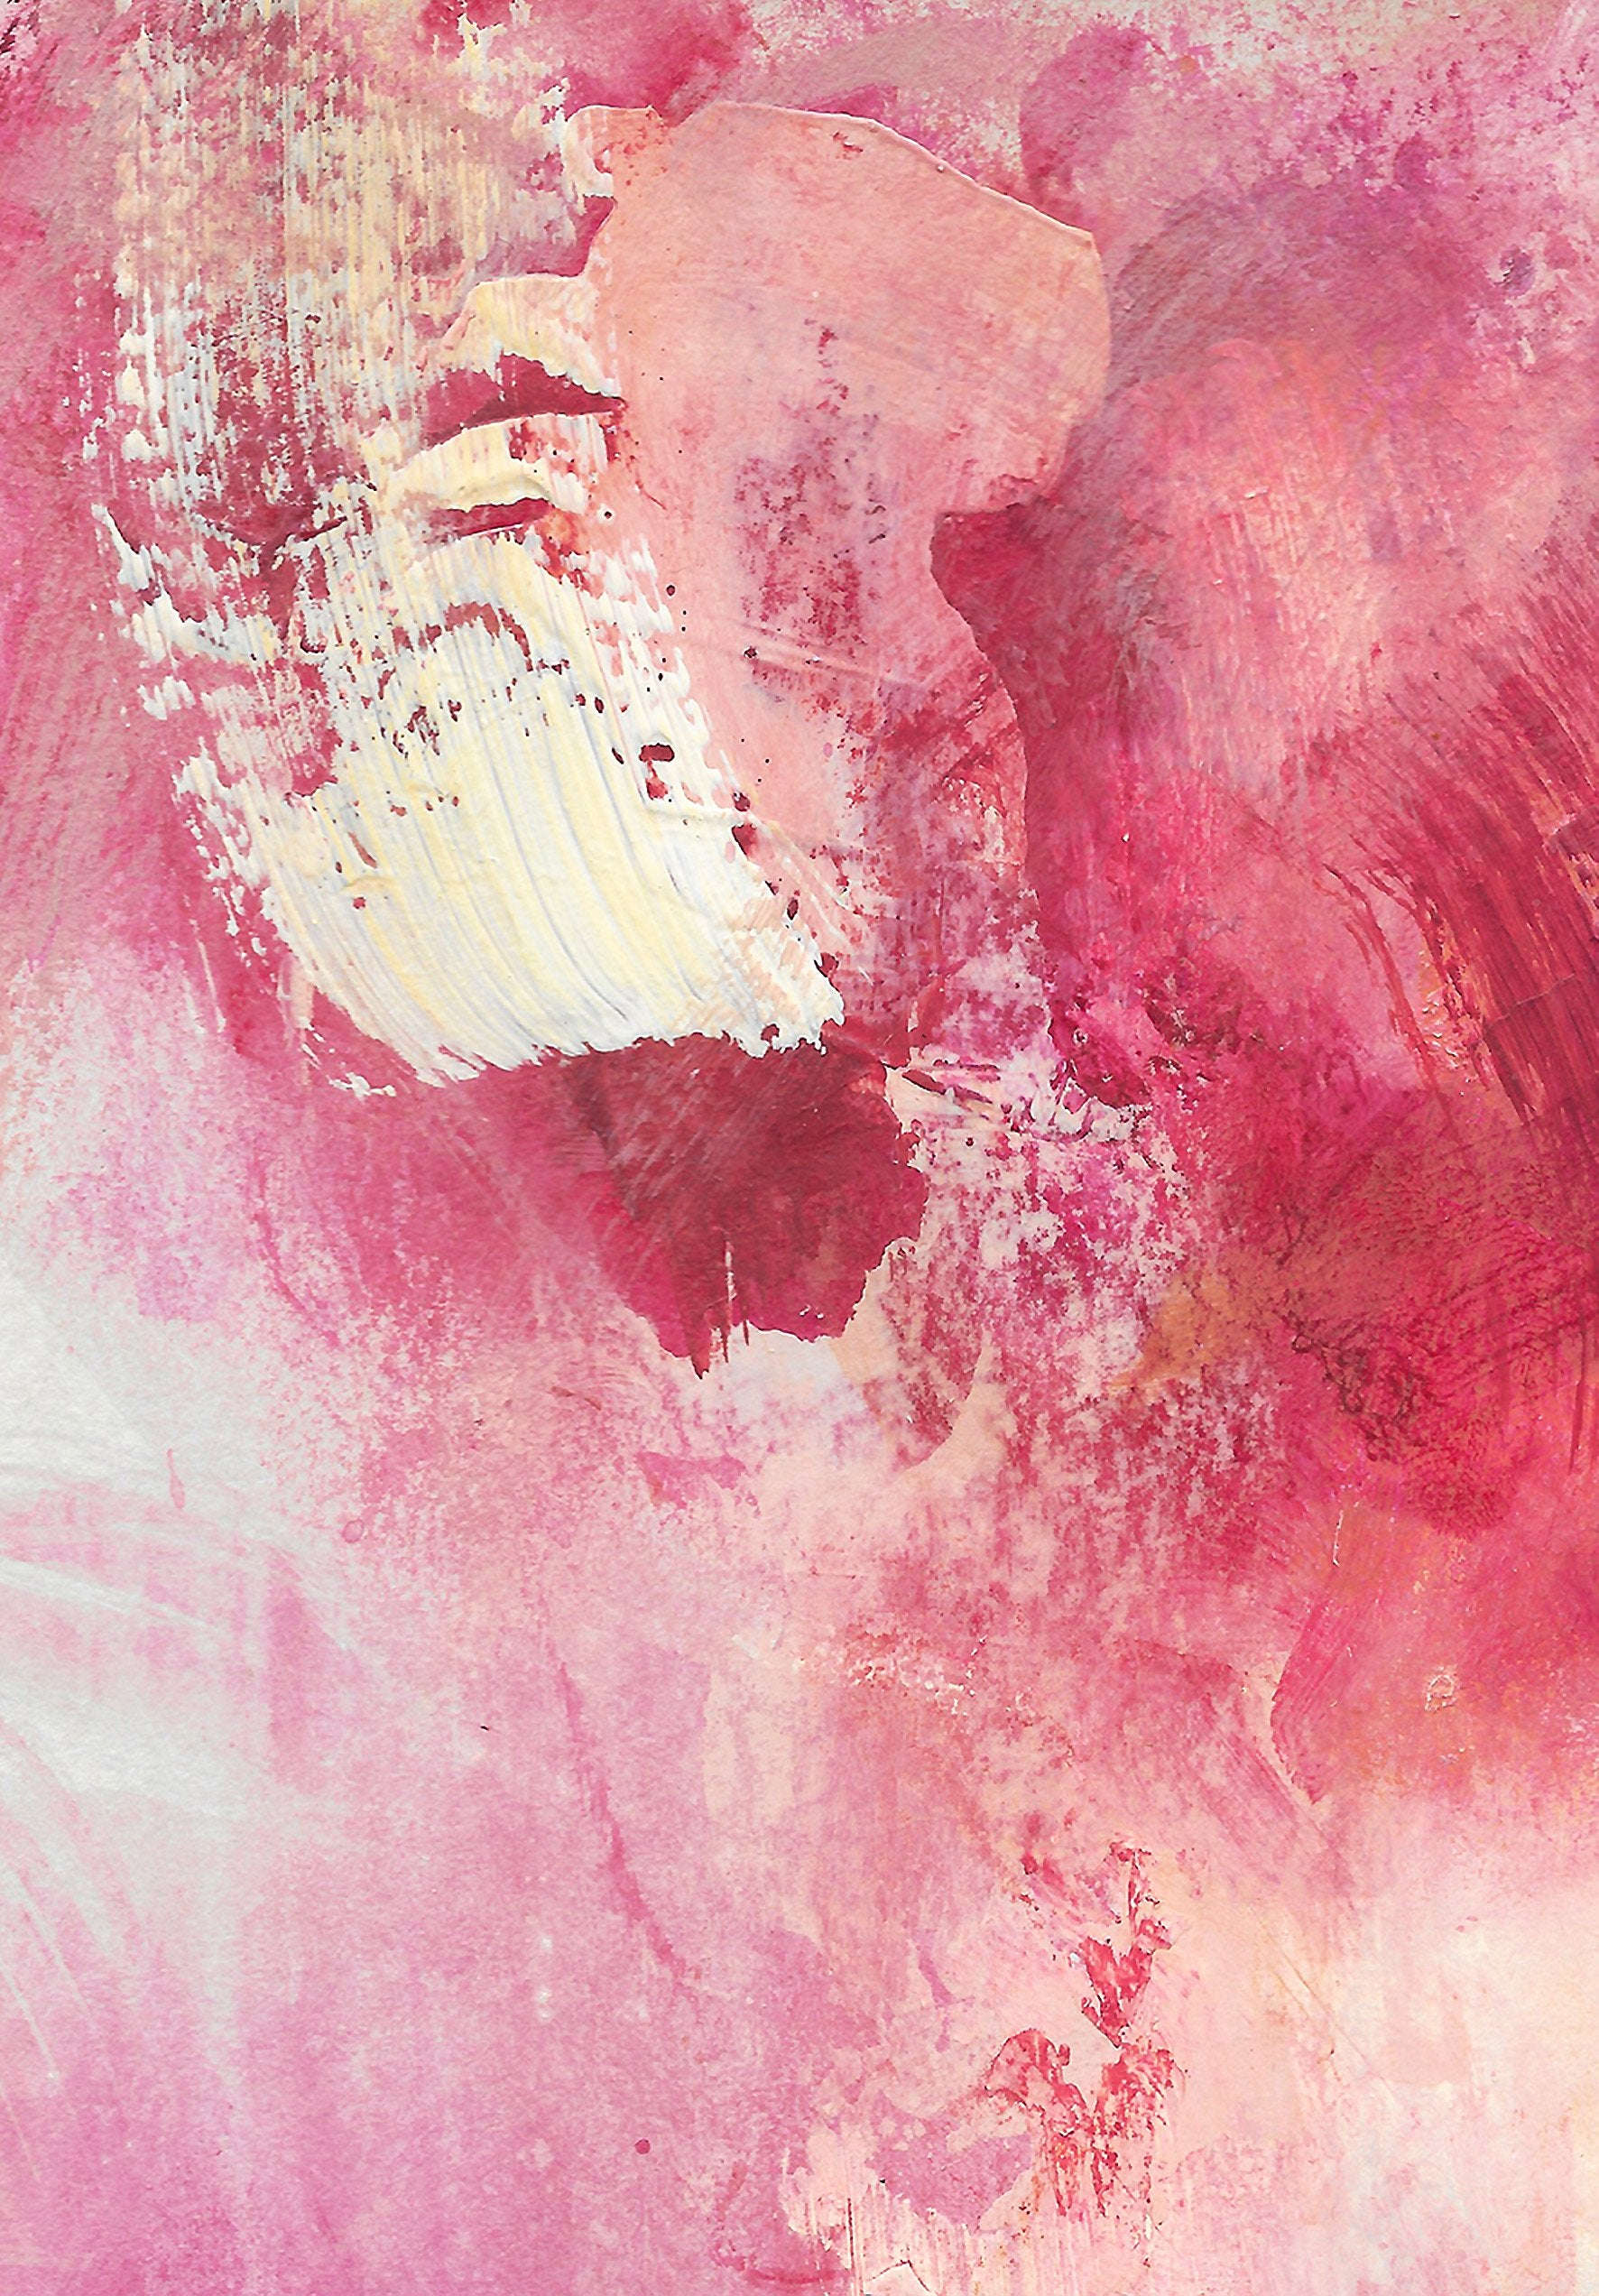 Detail of 'Medina Marrakesh VI', an abstract painting by contemporary, woman artist Katherine Sheers